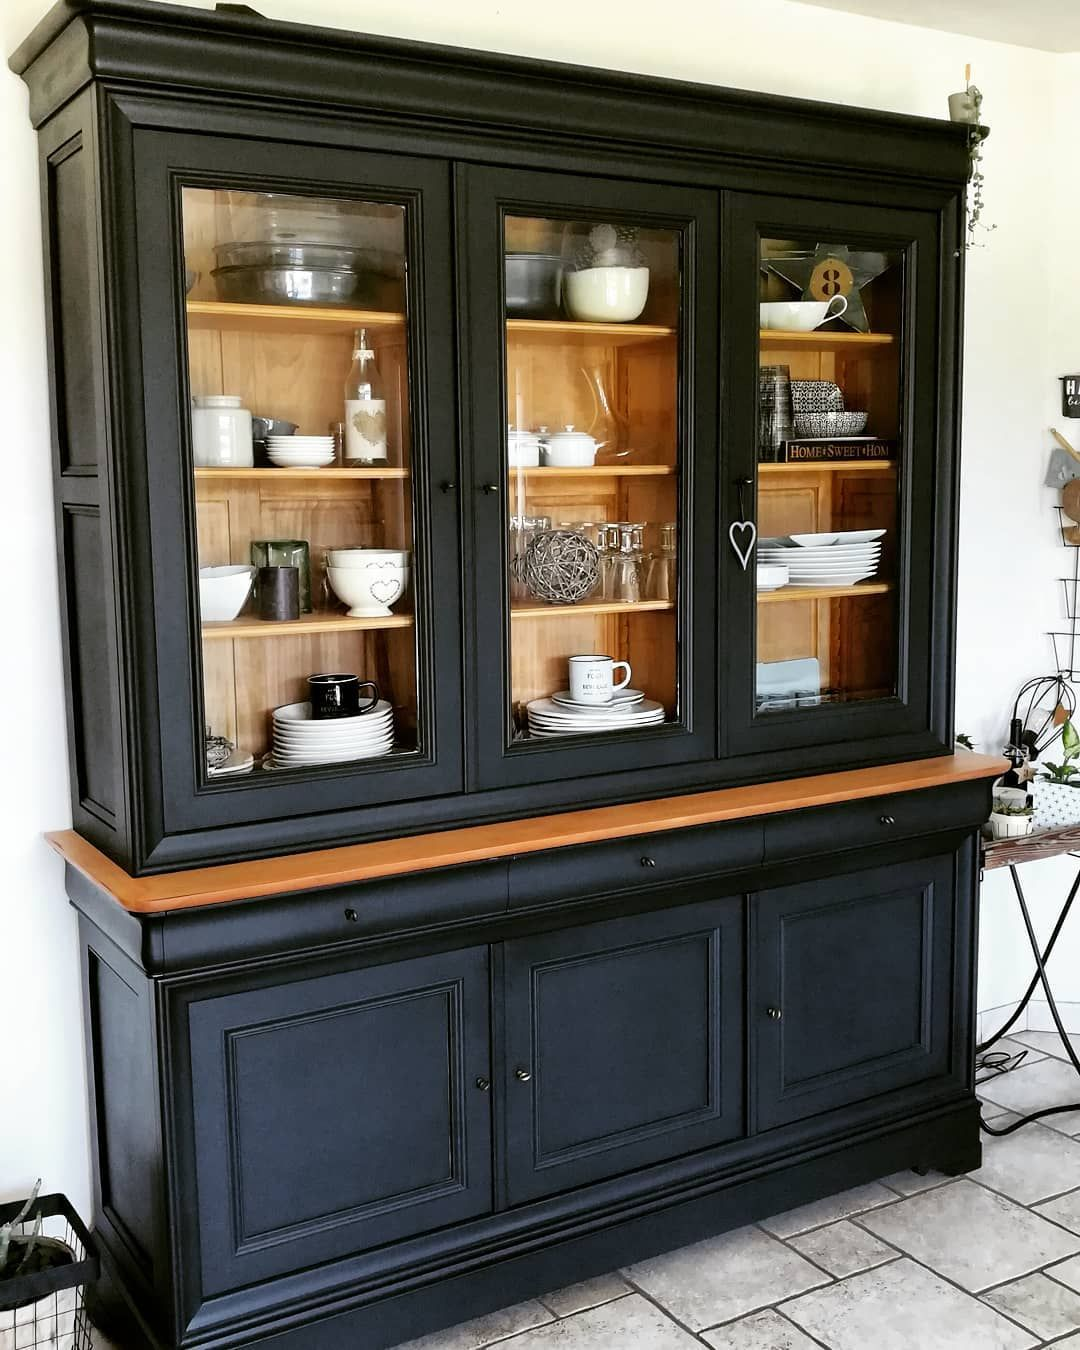 Vaisselier Ancien Brocante: [New] The 10 Best Home Decor (with Pictures)